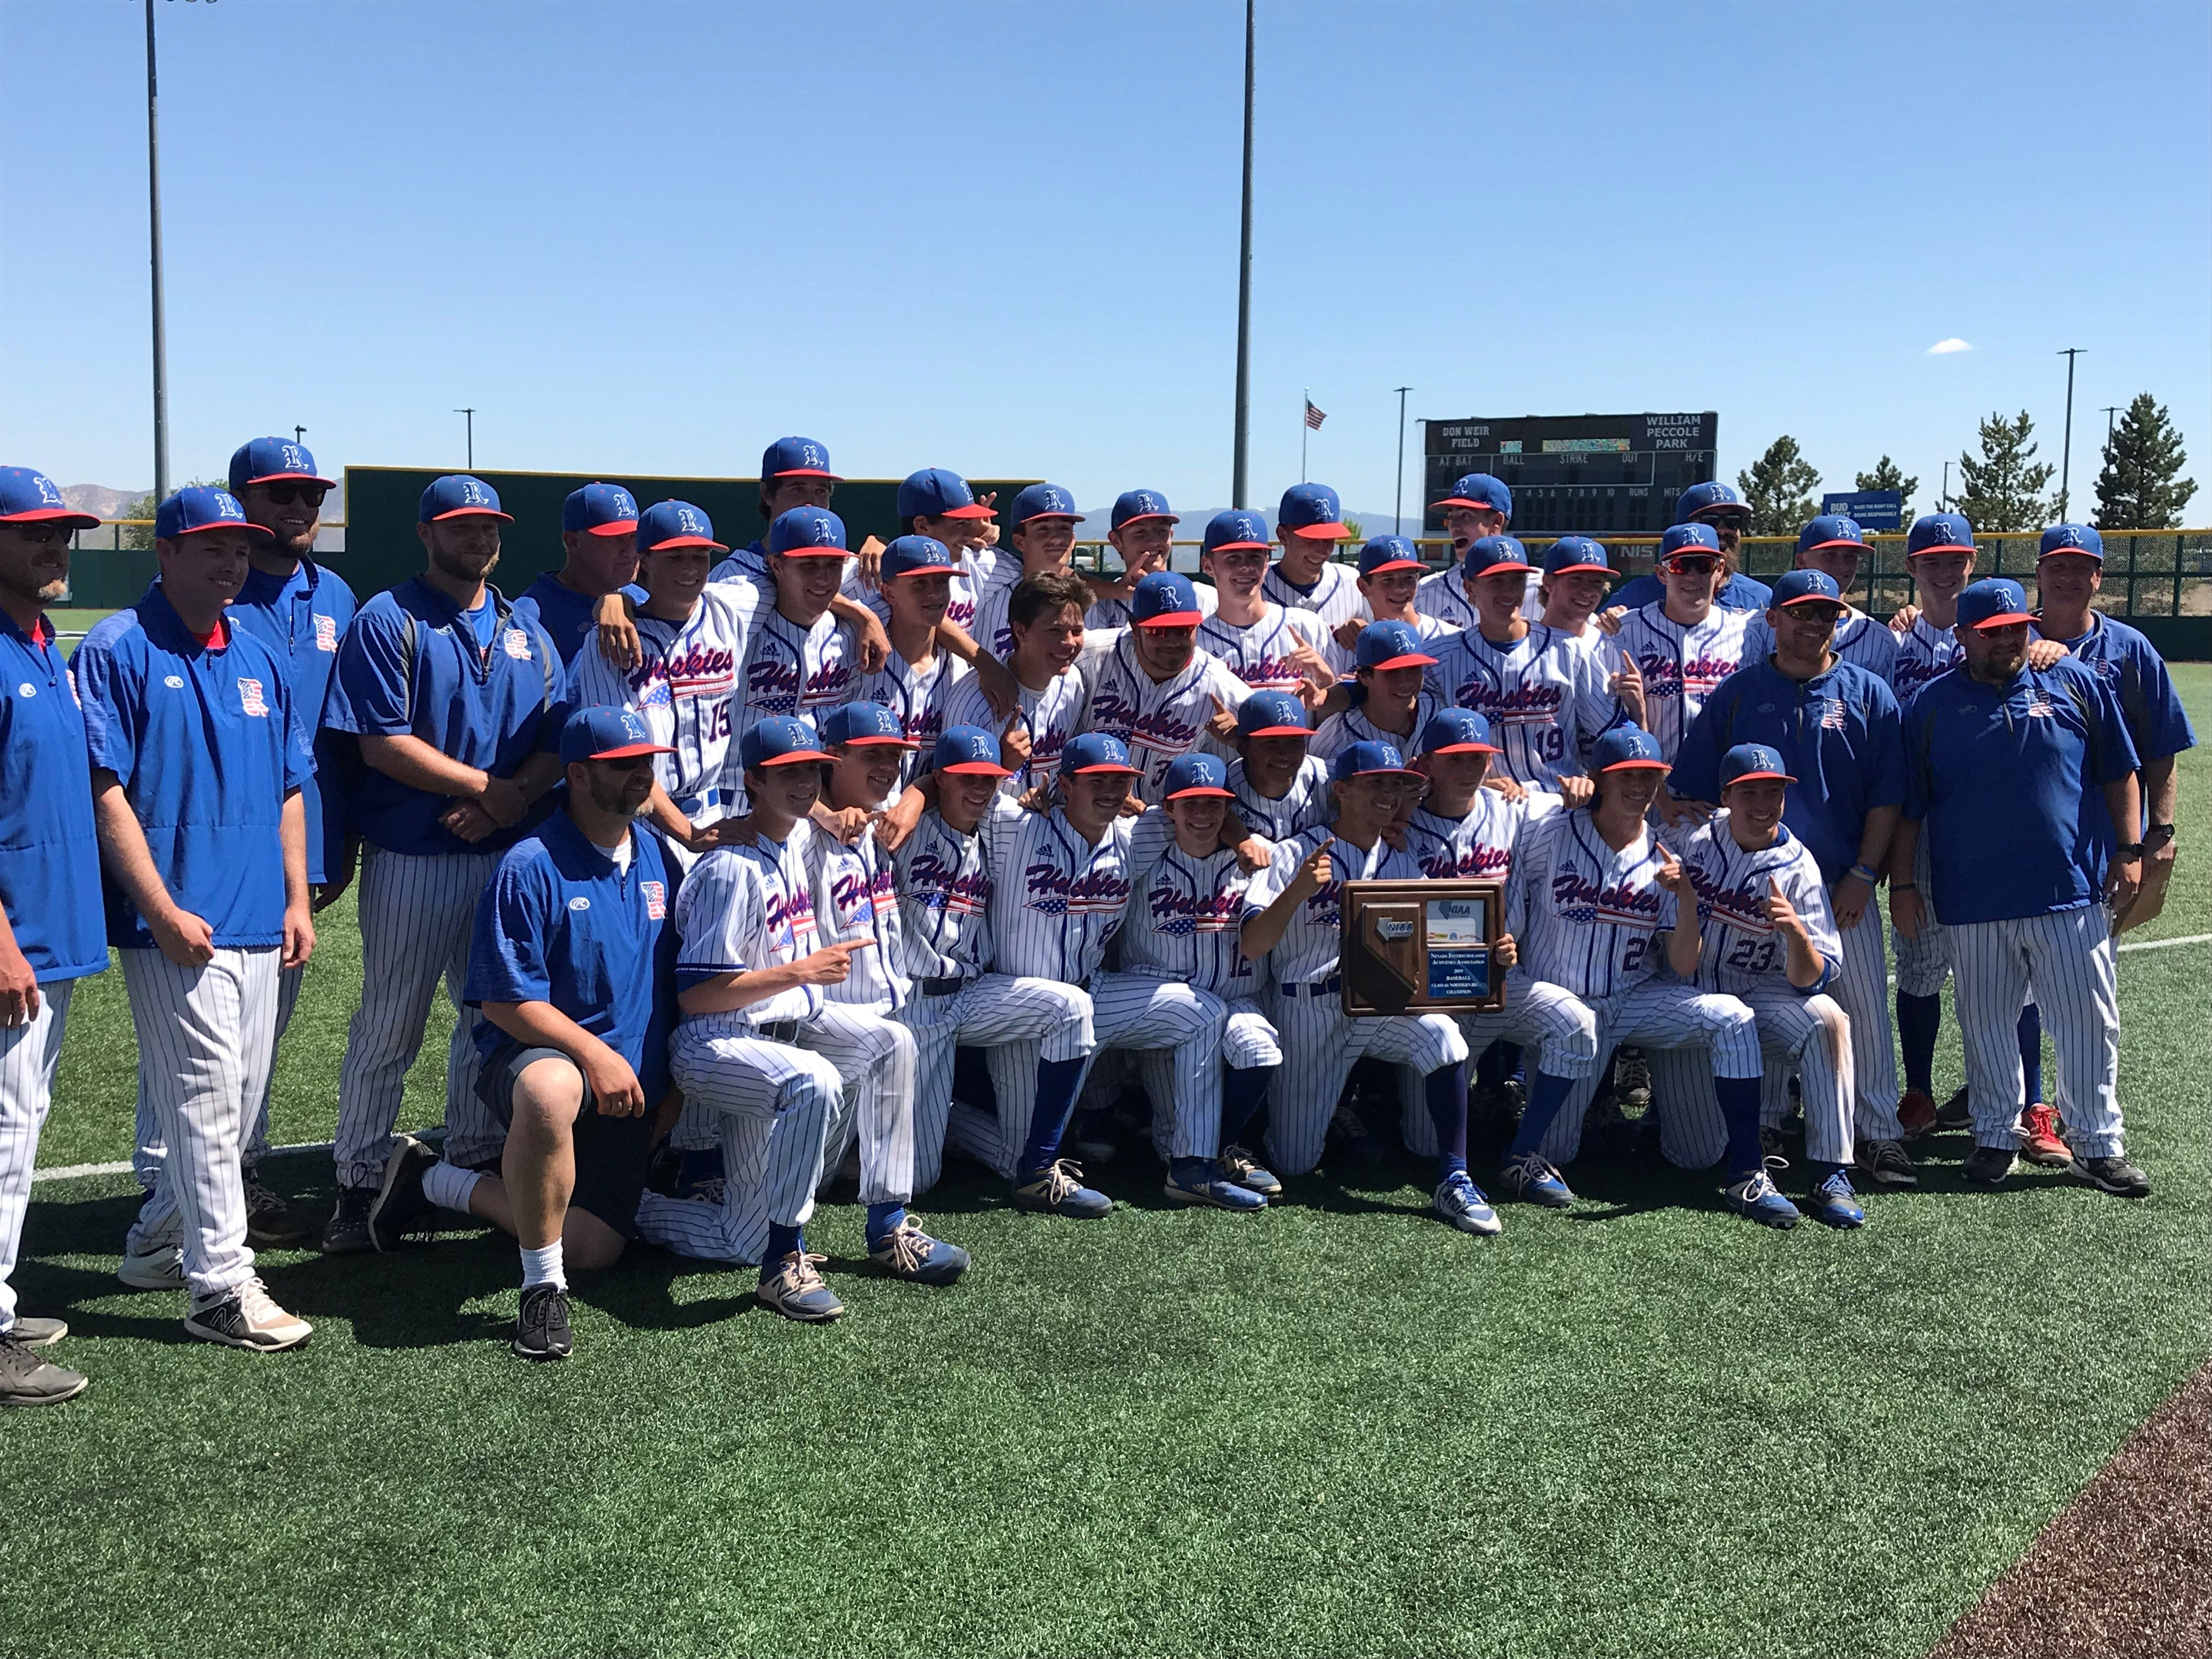 The Reno High baseball team poses with the Northern 4A Regional championship trophy on Saturday at Peccole Park in Reno.